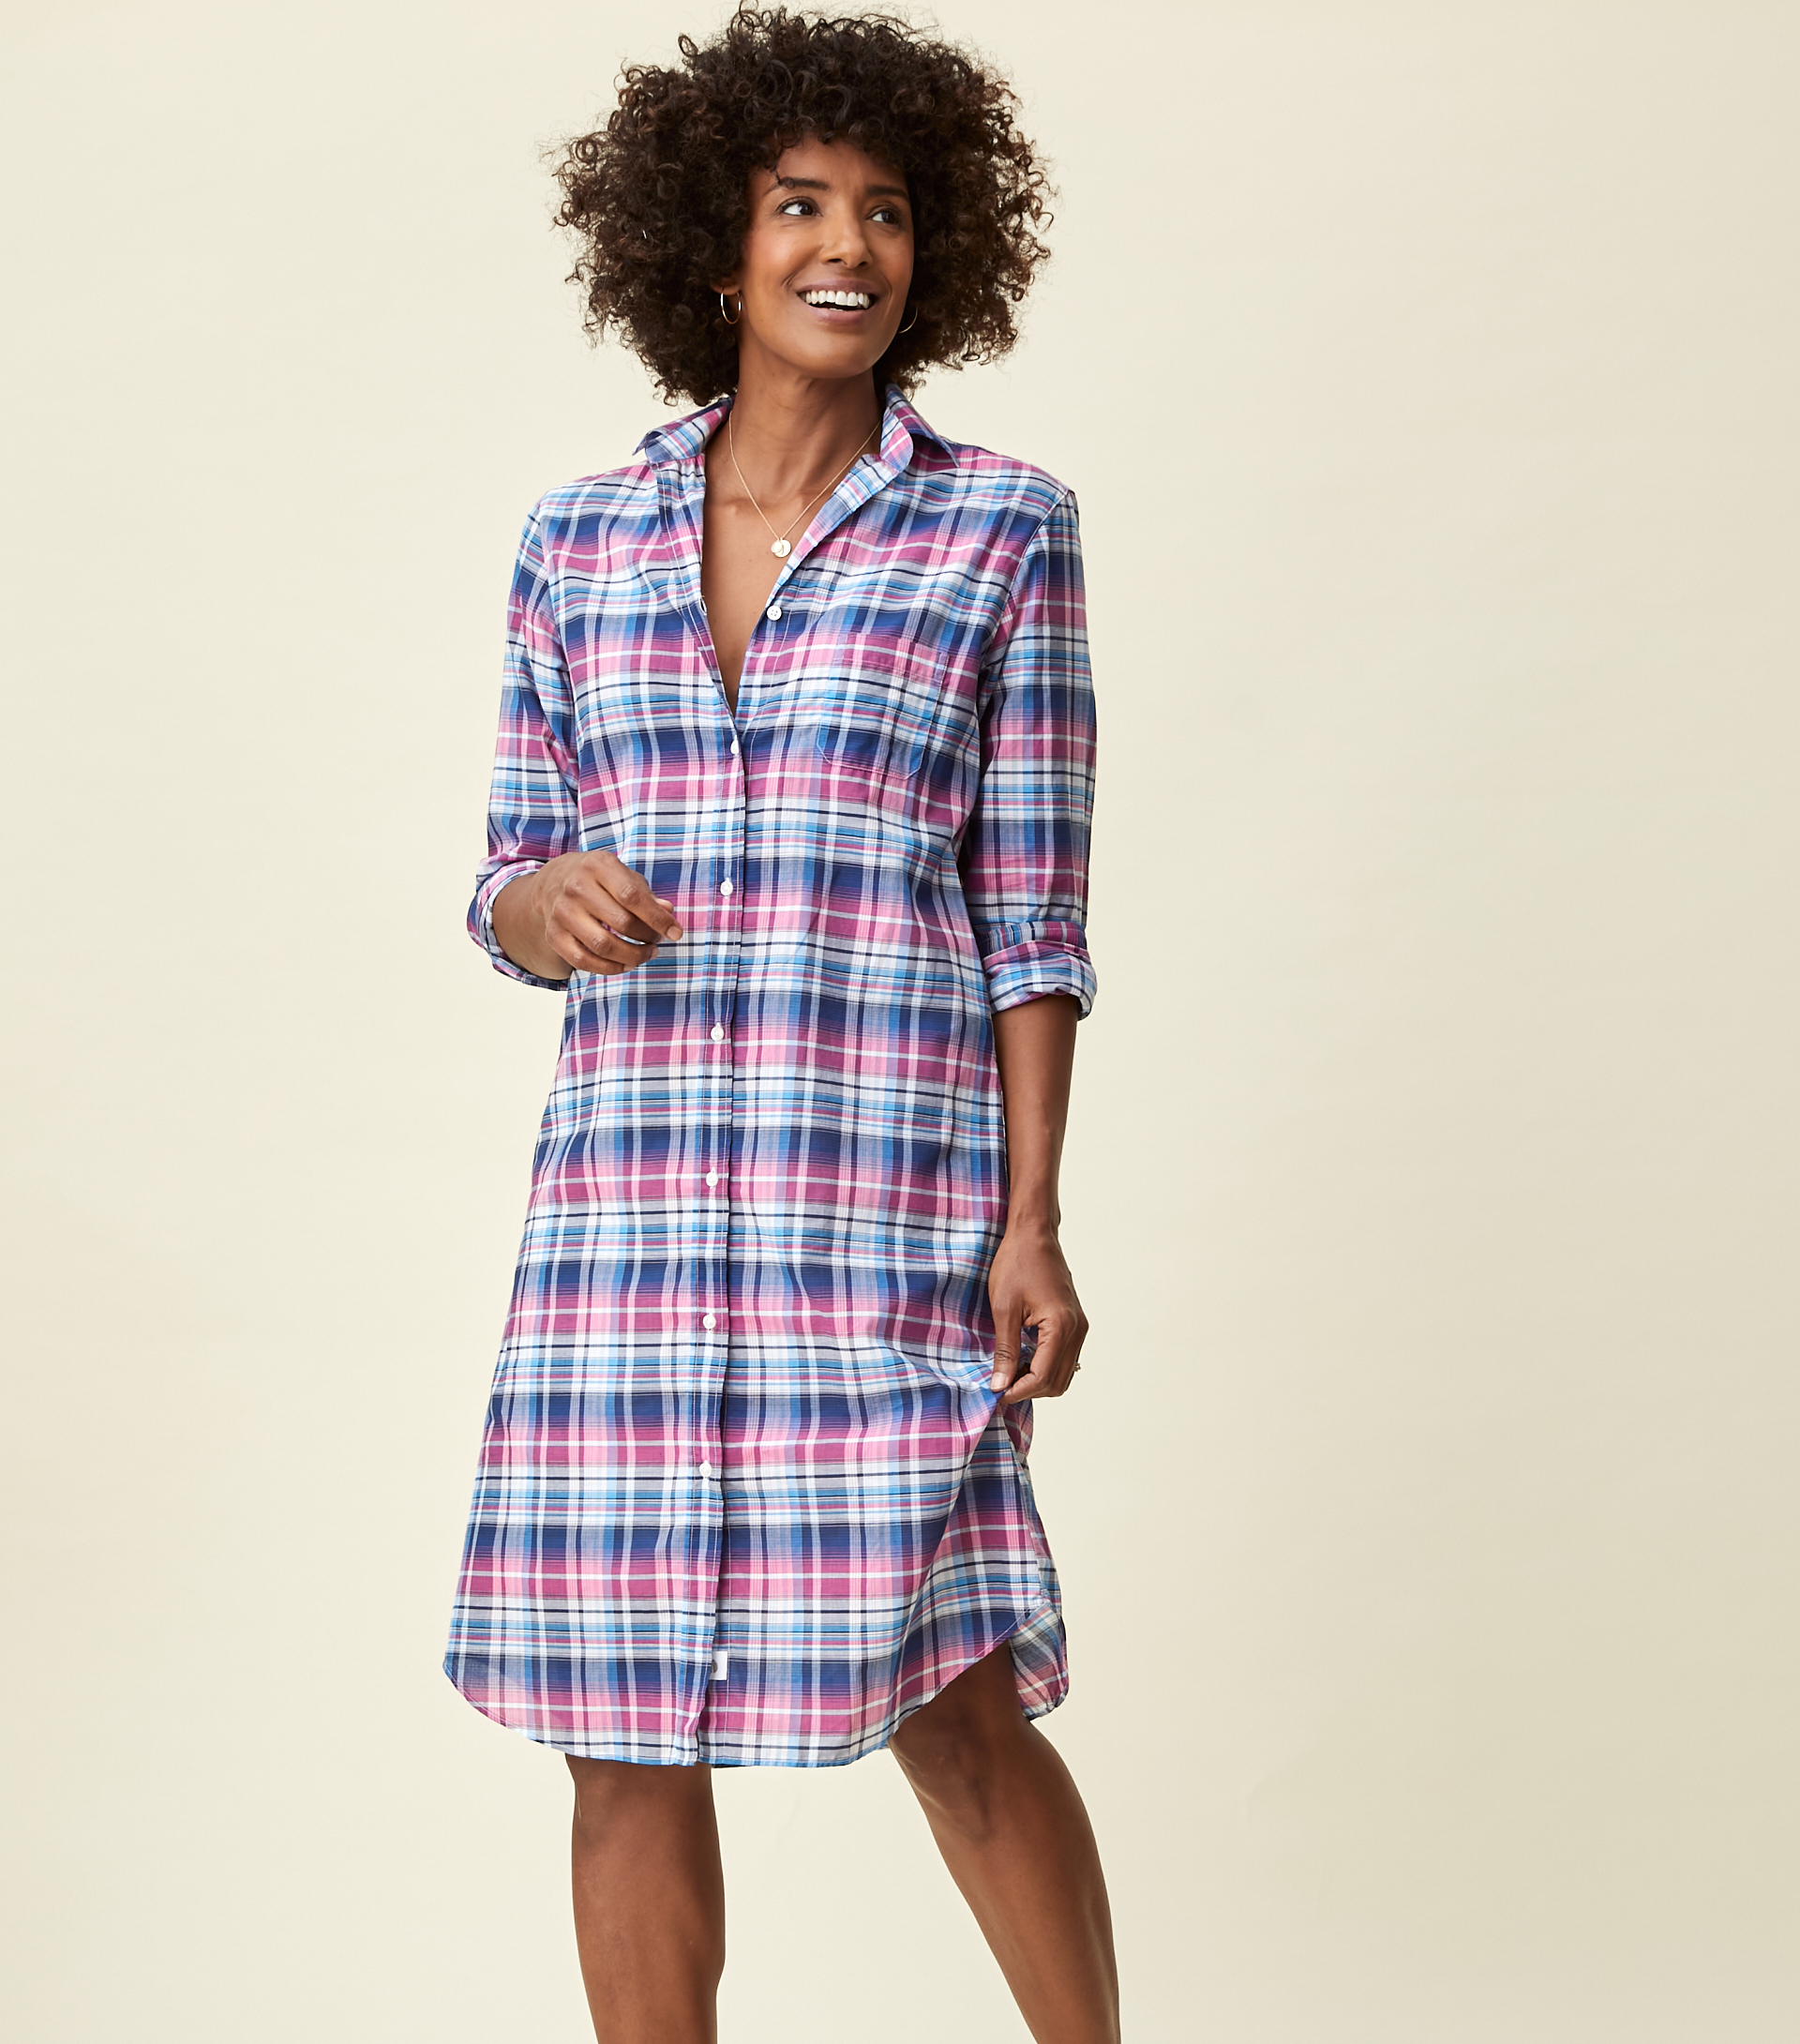 Image of The Hero Midi Dress Blue and Pink Plaid, Tissue Cotton